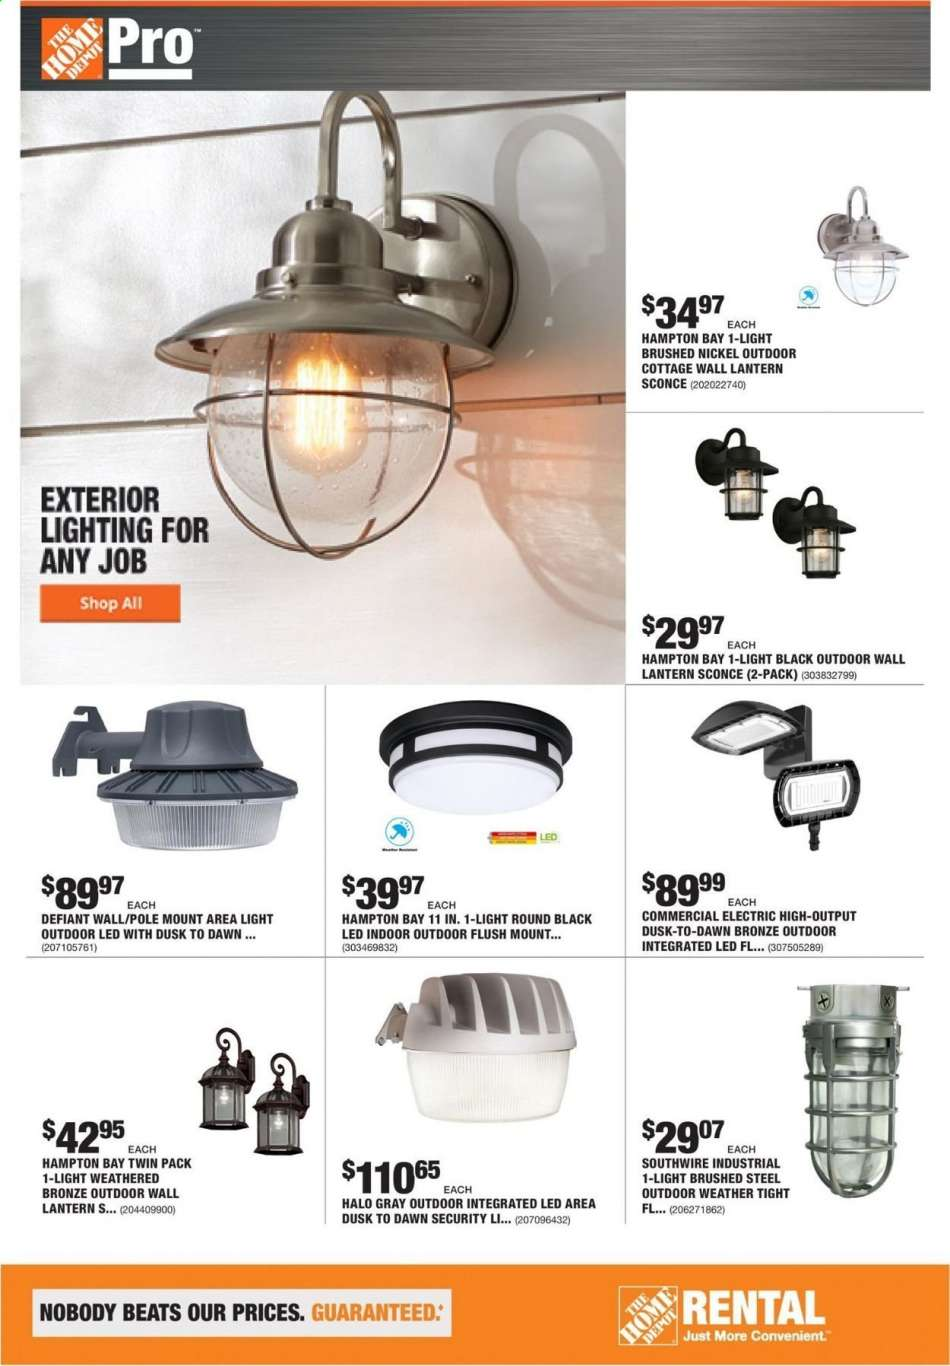 Defiant Area Light Wall// Pole Mount Outdoor LED Weather Resistant Dusk to Dawn